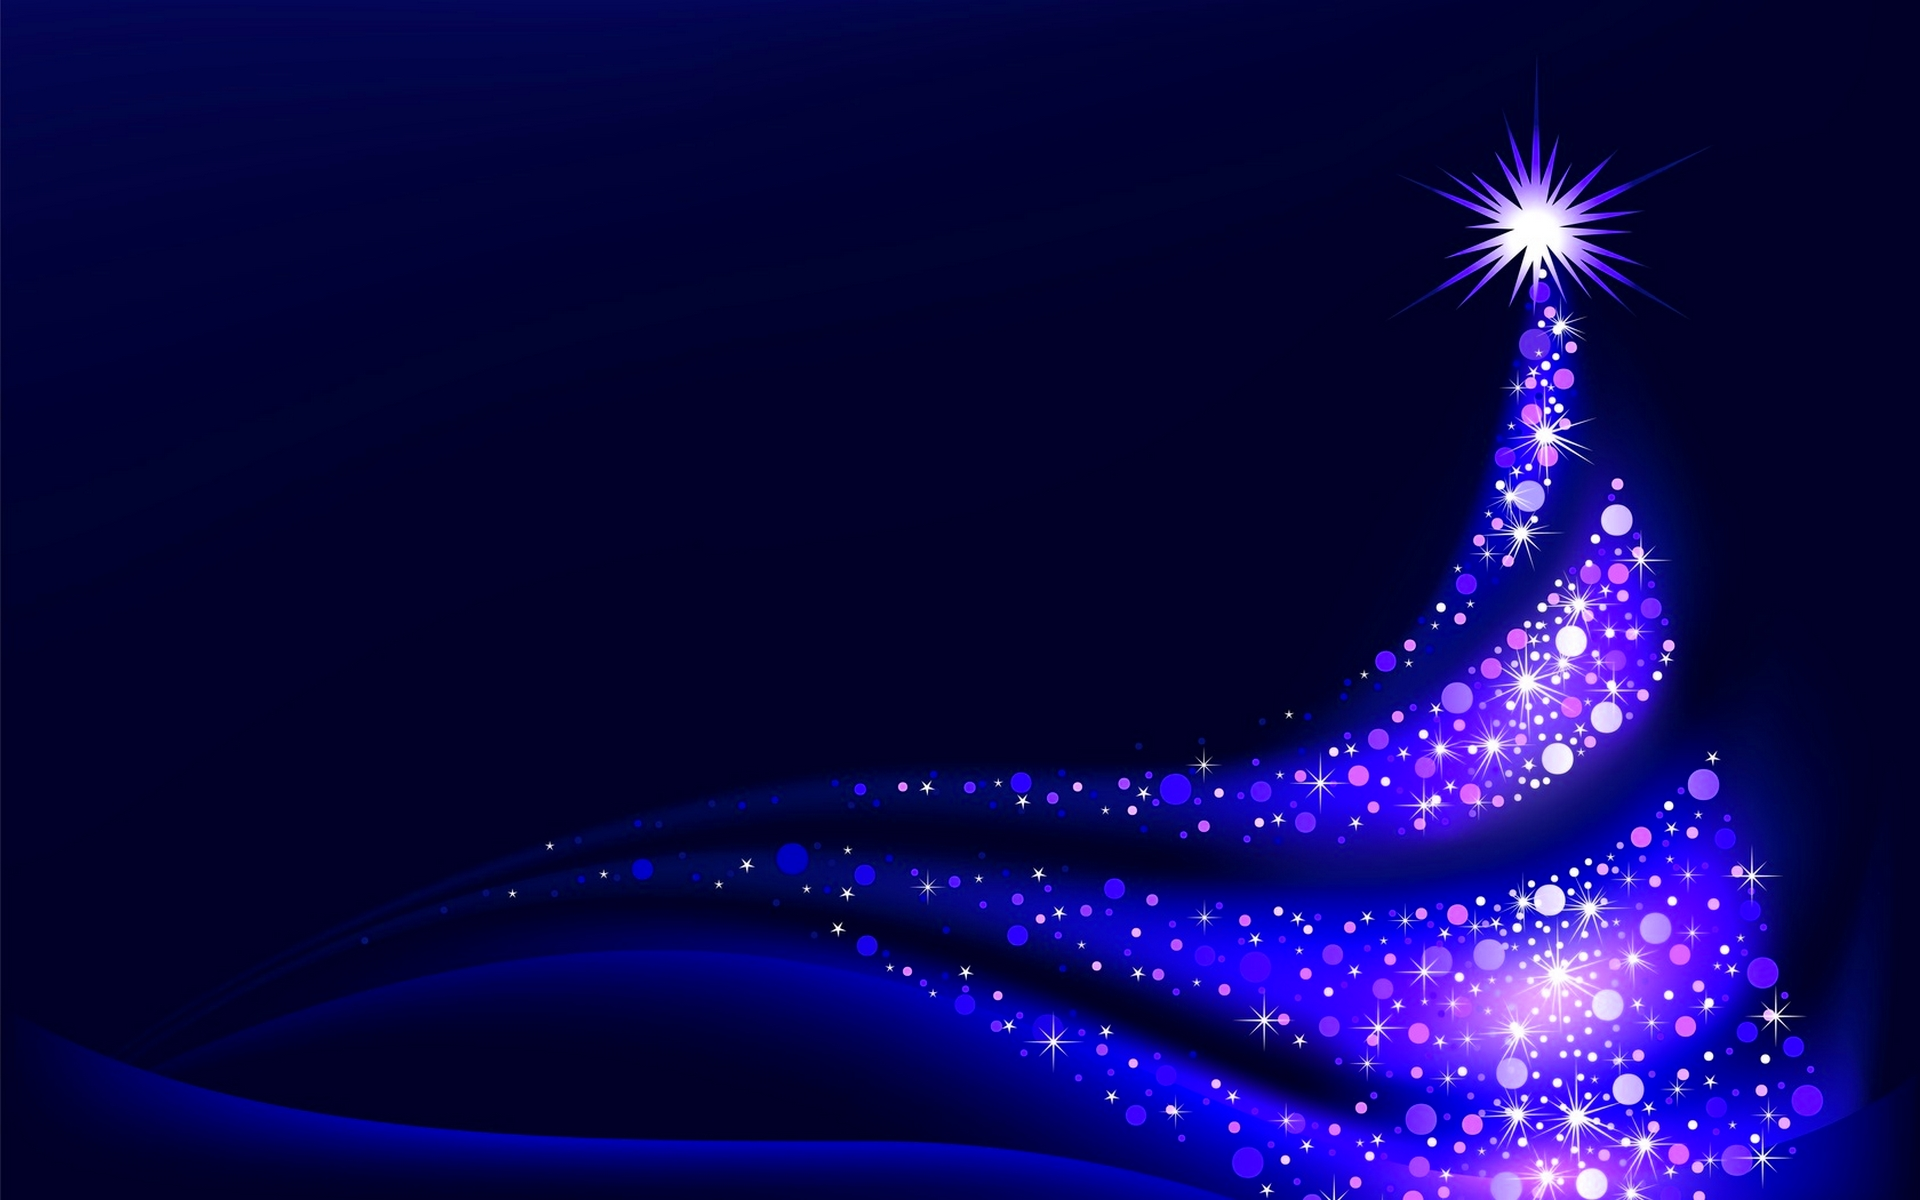 Abstract Tree Christmas Wallpaper 8526 Wallpaper Cool Walldiskpaper 1920x1200